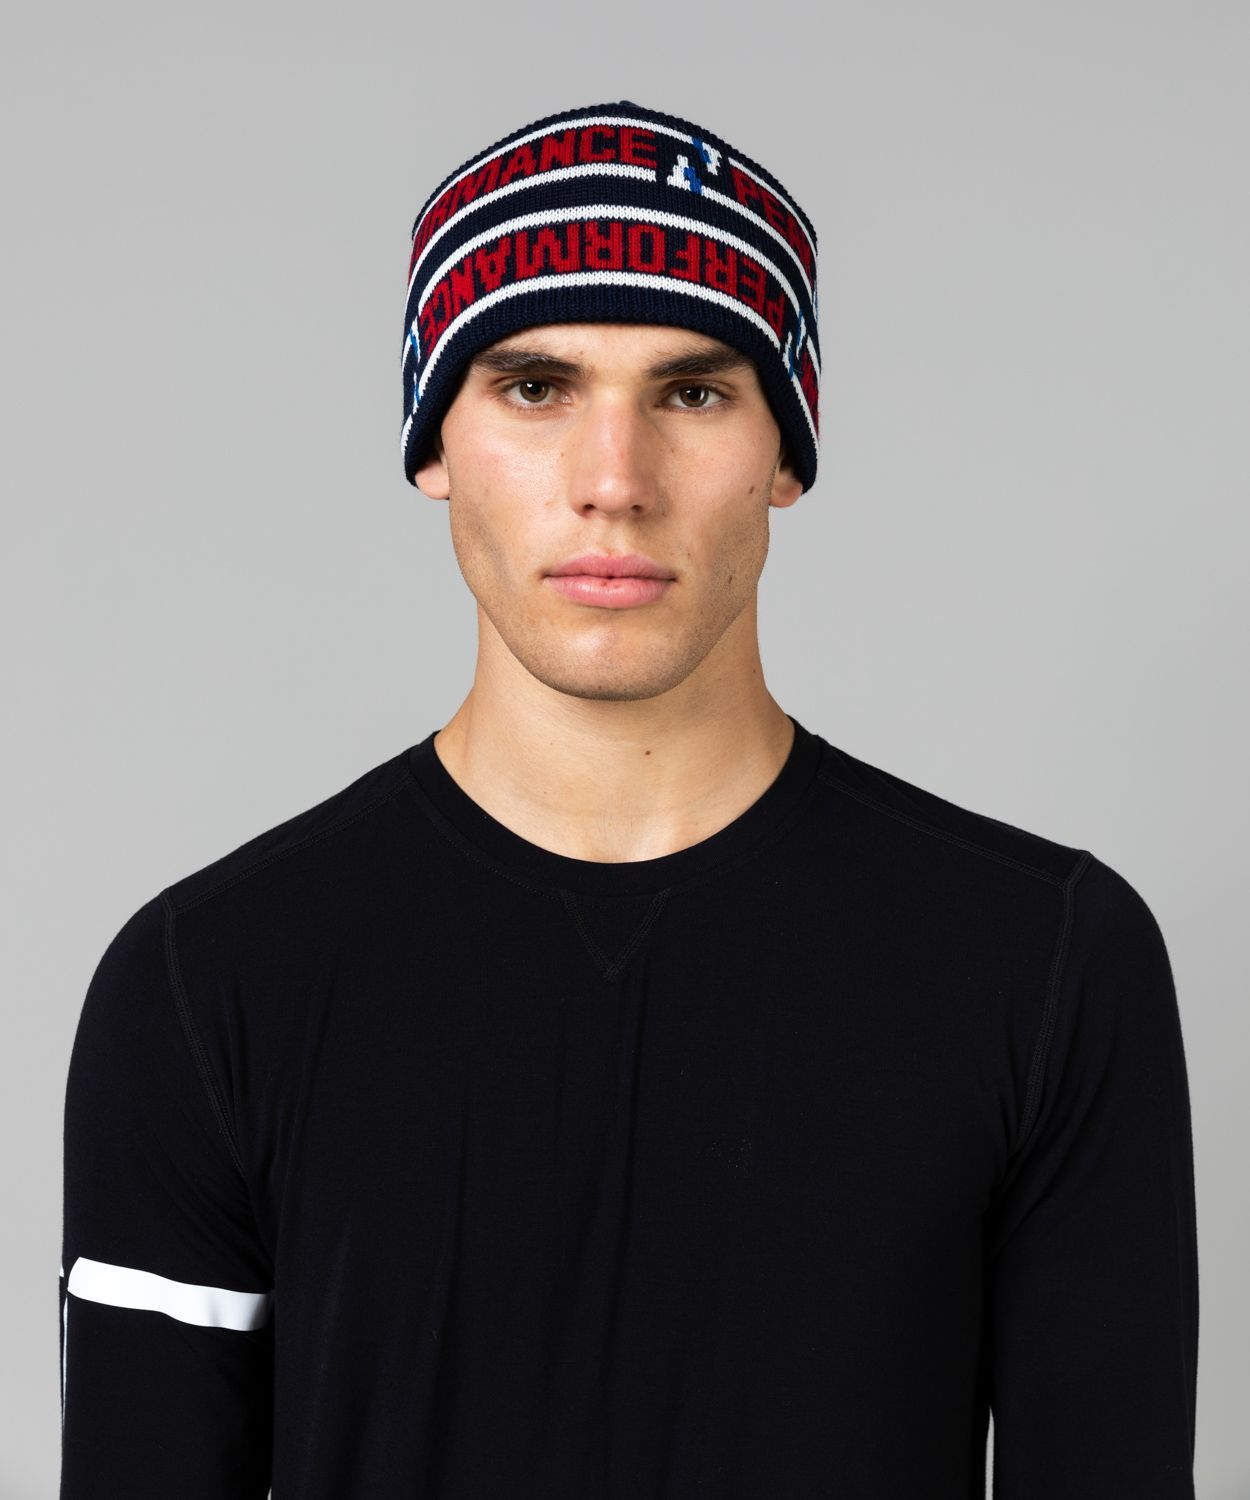 Peak Performance - Peakville Beanie Hats | Beanies Peak Performance Salute Blue S/M